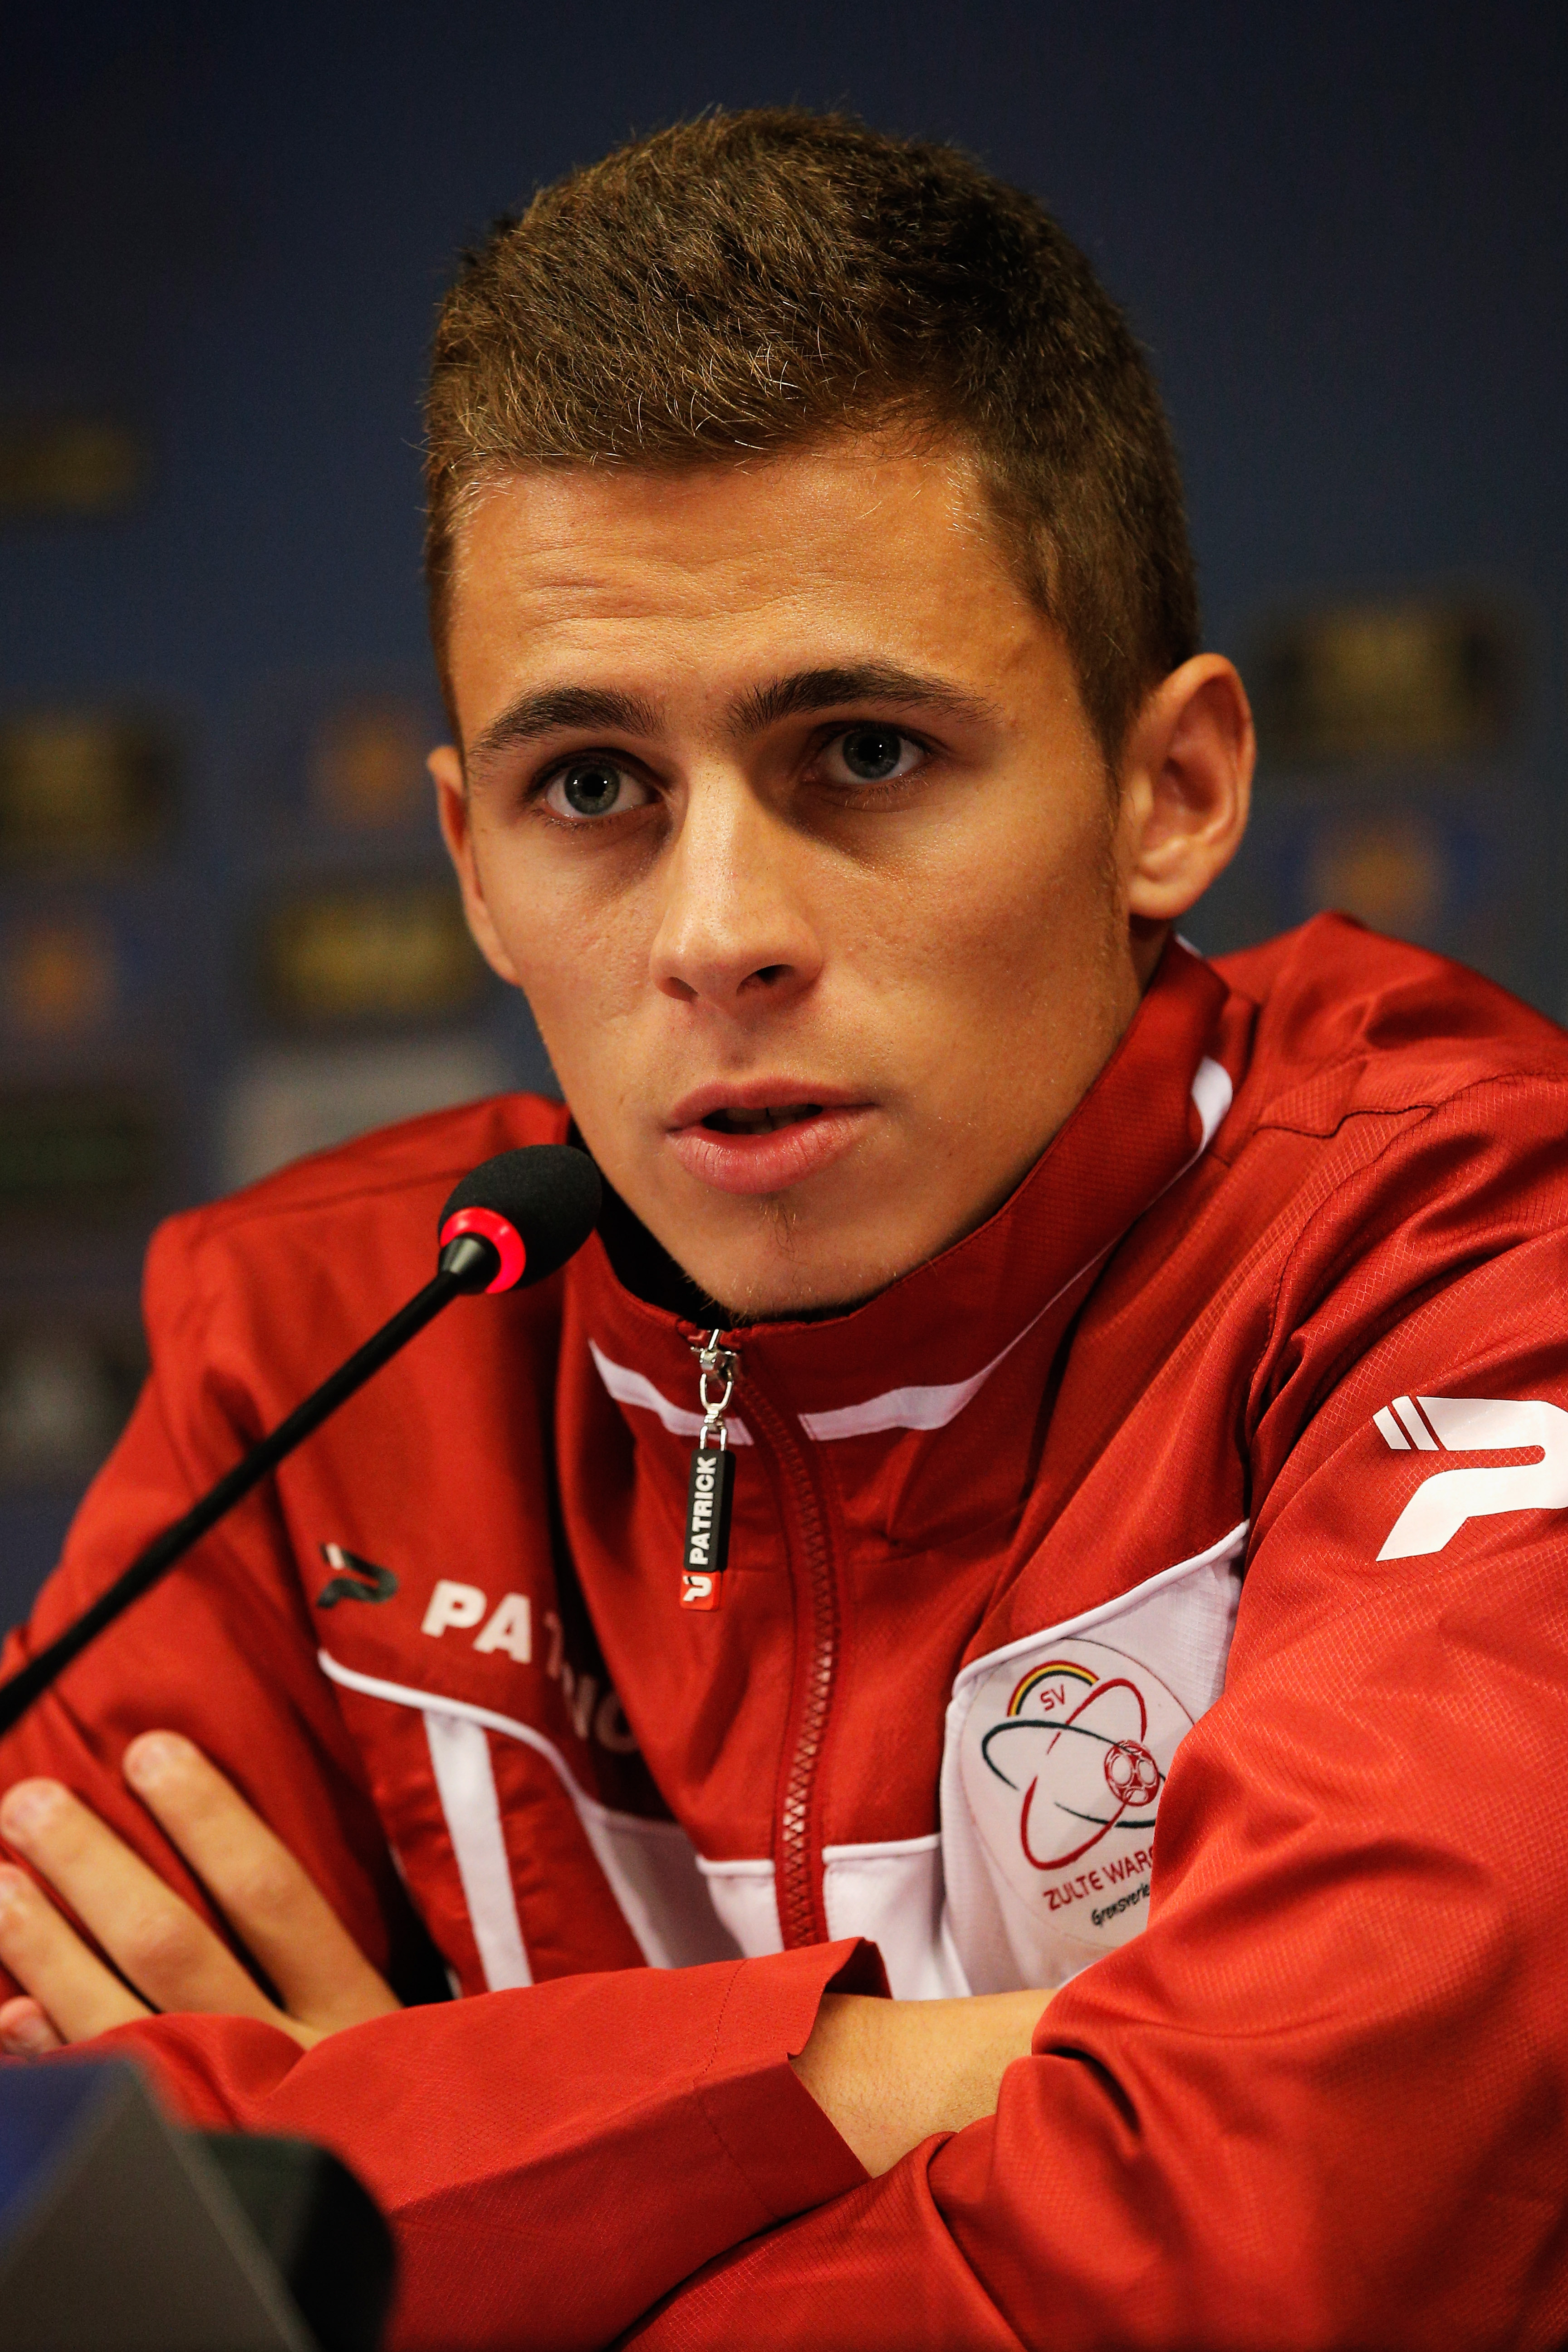 BRUSSELS, BELGIUM - SEPTEMBER 18: Thorgan Hazard speaks to the media during the SV Zulte Waregem Press Conference prior to the Europa League match between SV Zulte Waregem and Wigan Athletic at the Jan Breydelstadium on September 18, 2013 in Brussels, Belgium. (Photo by Dean Mouhtaropoulos/Getty Images)